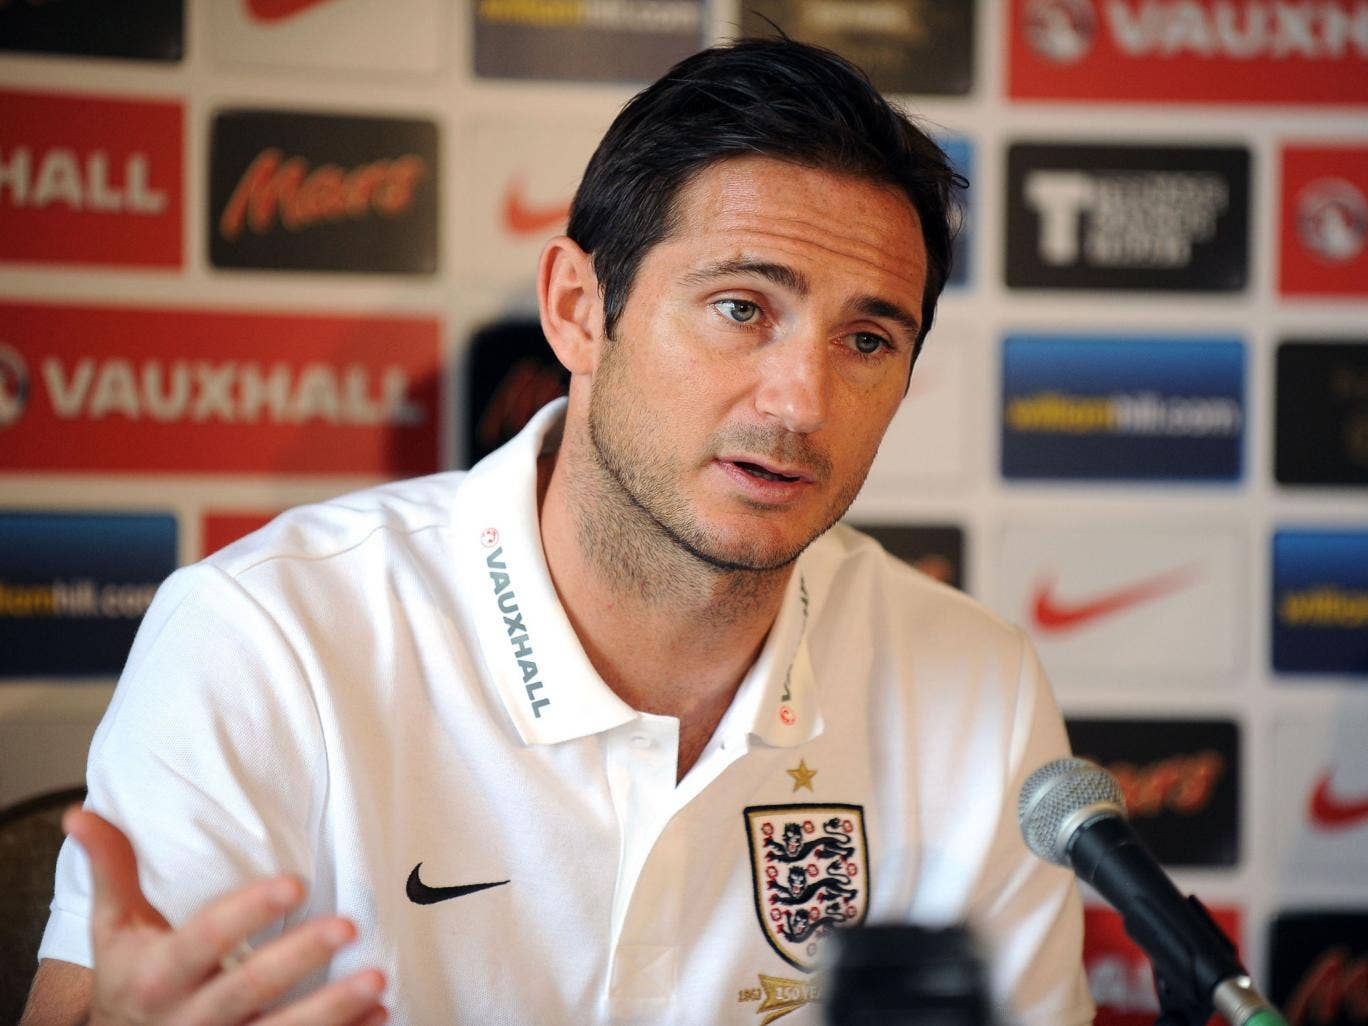 Frank Lampard speaking to the media in advance of a likely 100th England cap